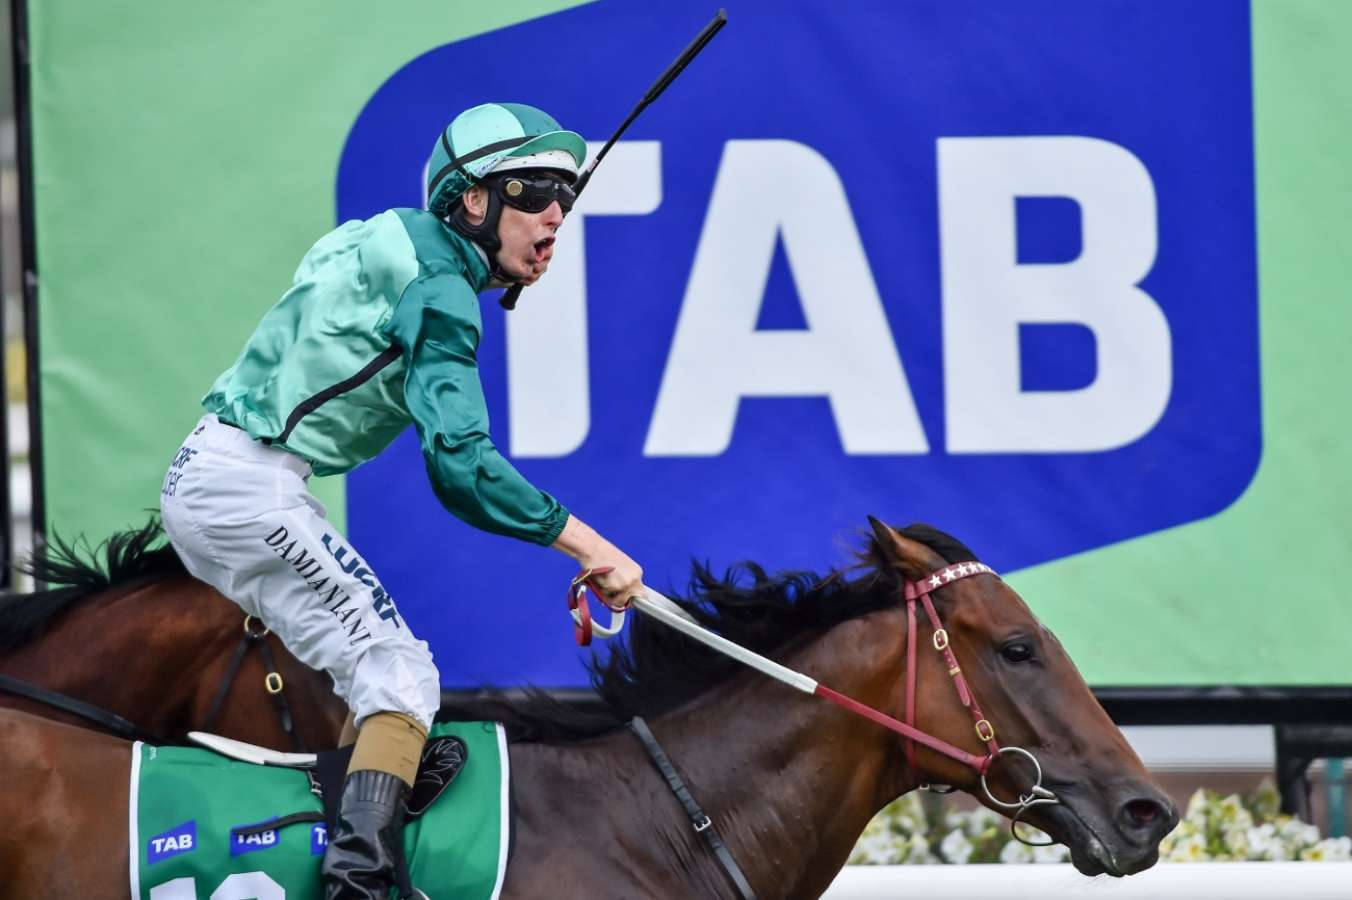 Australian tribunal clears bookmaker Tabcorp to buy lotto firm for $4.7 bln